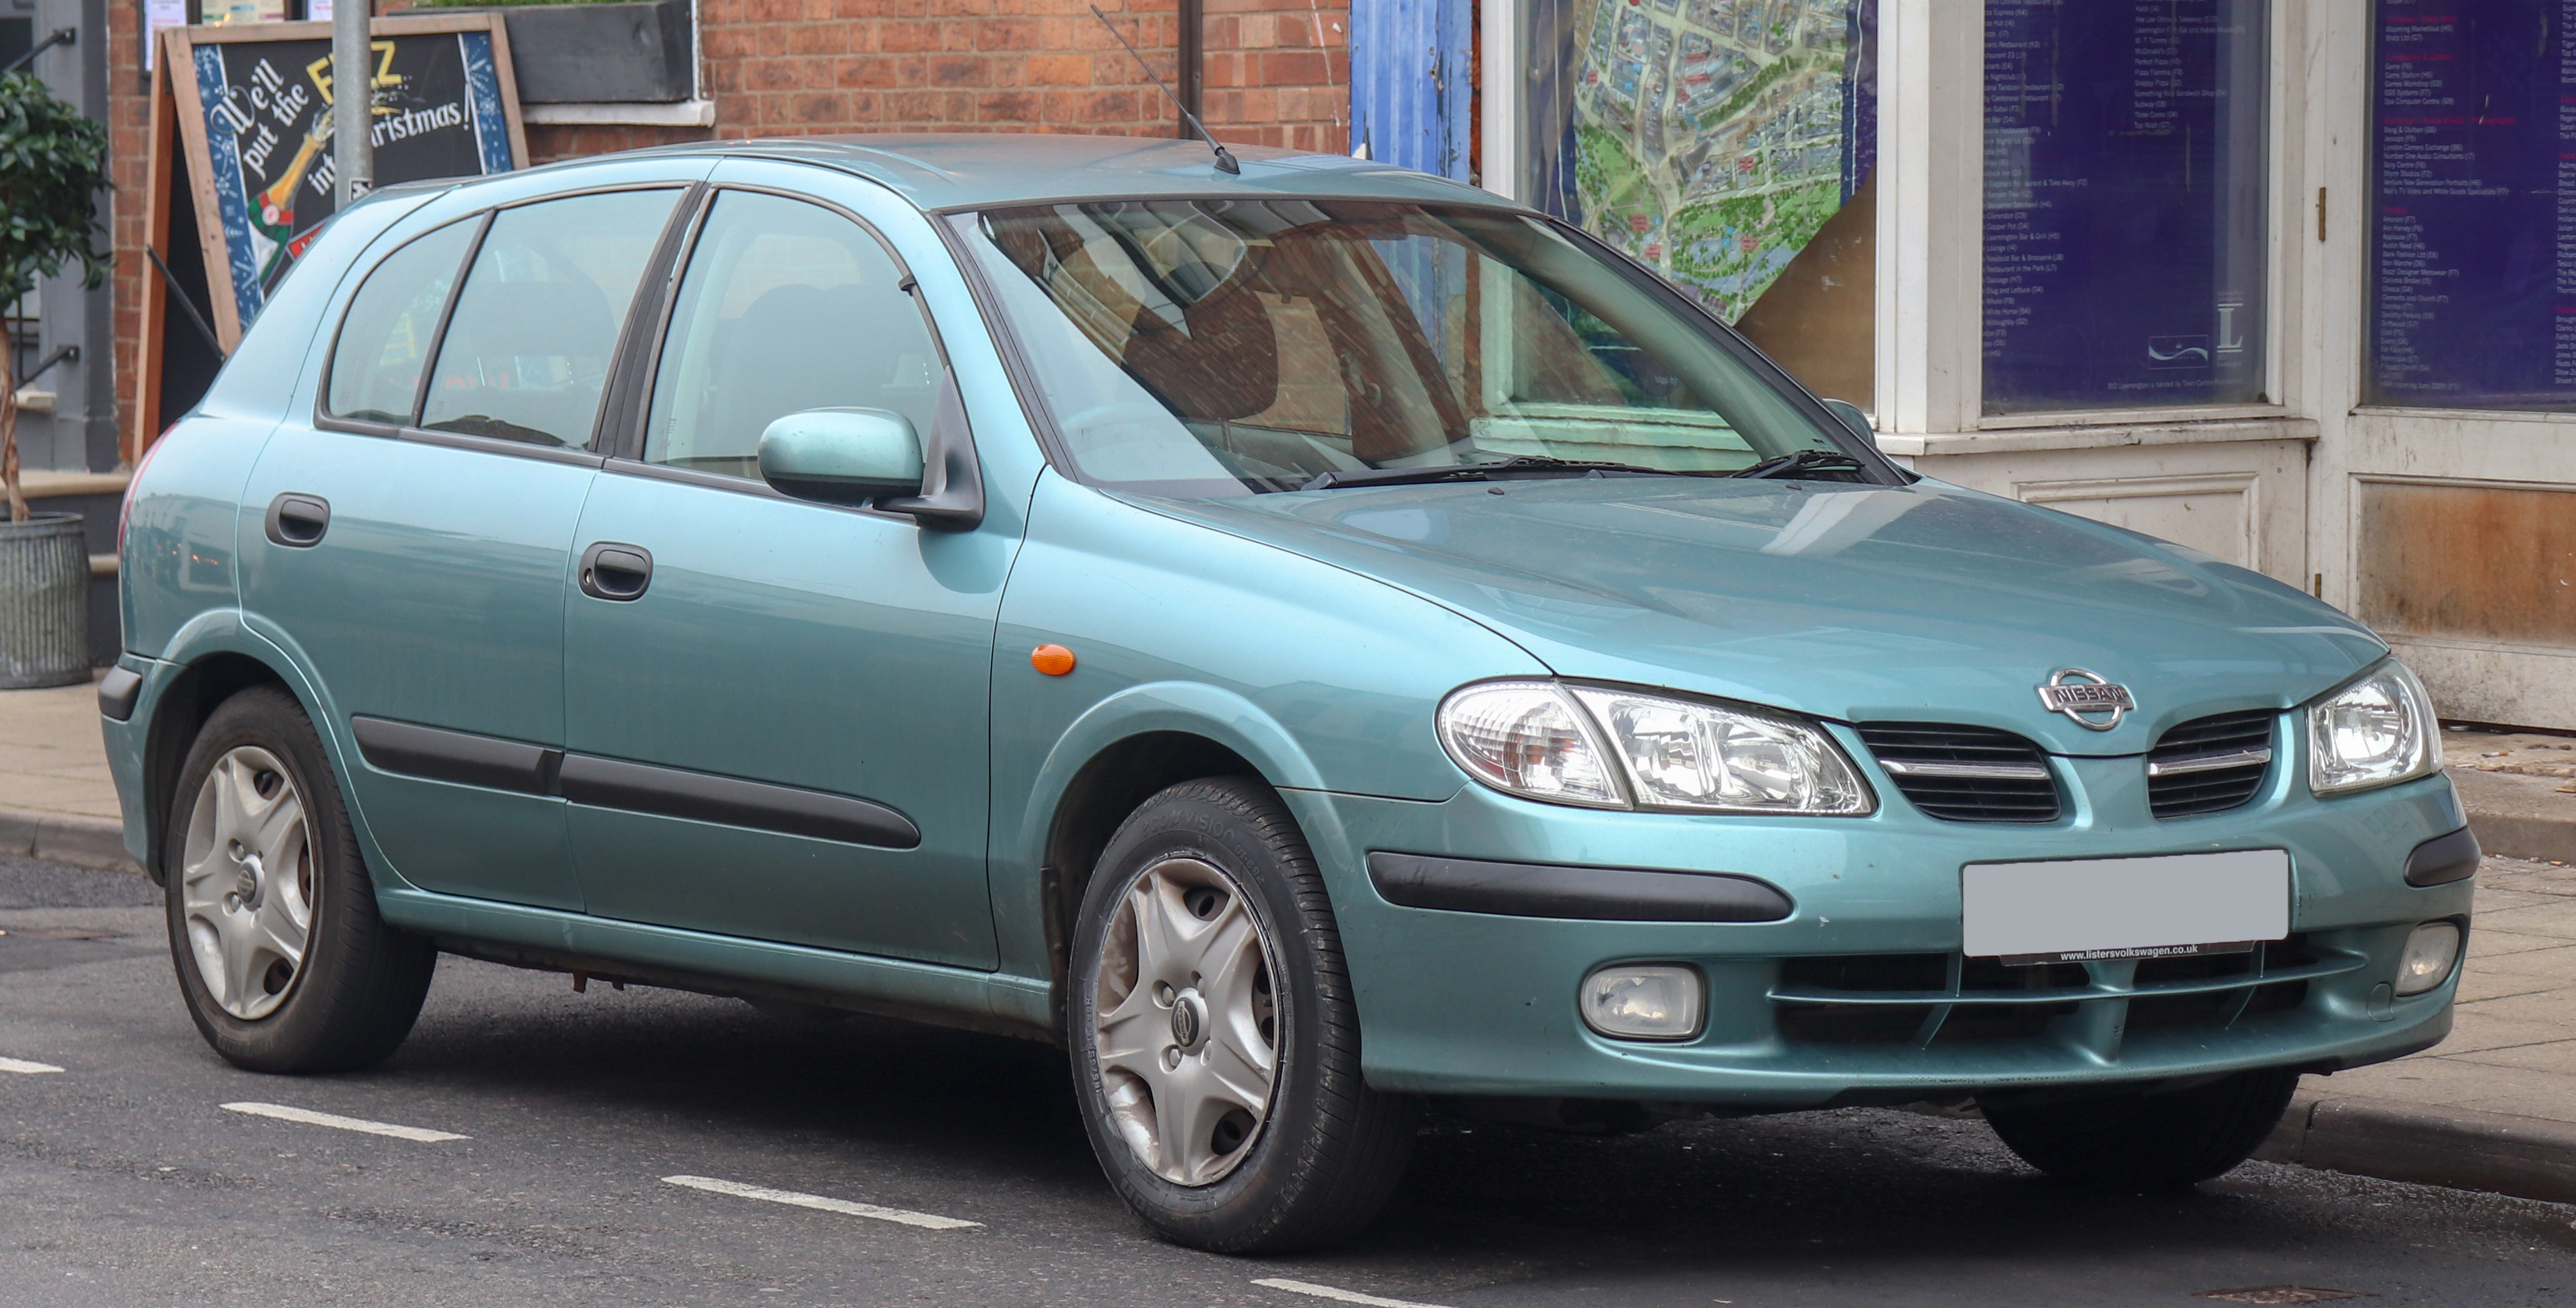 Where is the Engine Number Located In the Nissan Almera File 2003 Nissan Almera E 1 5 Front Wikimedia Mons